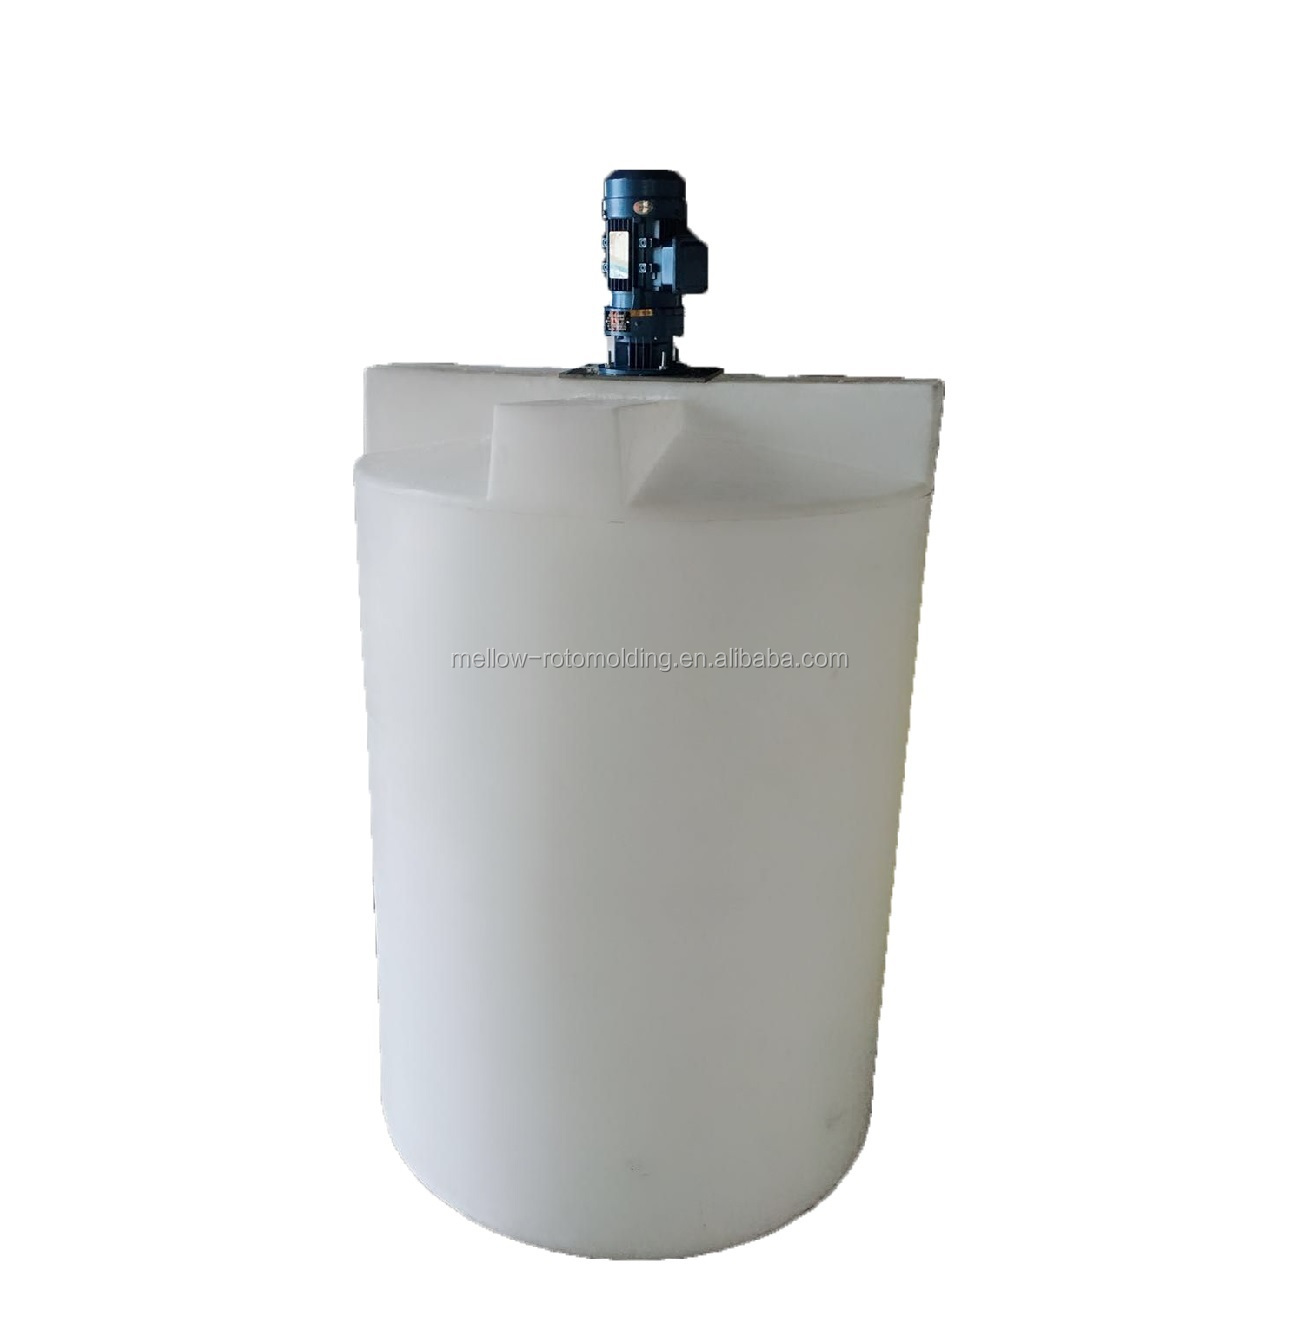 Rotational molded plastic dosing water tank